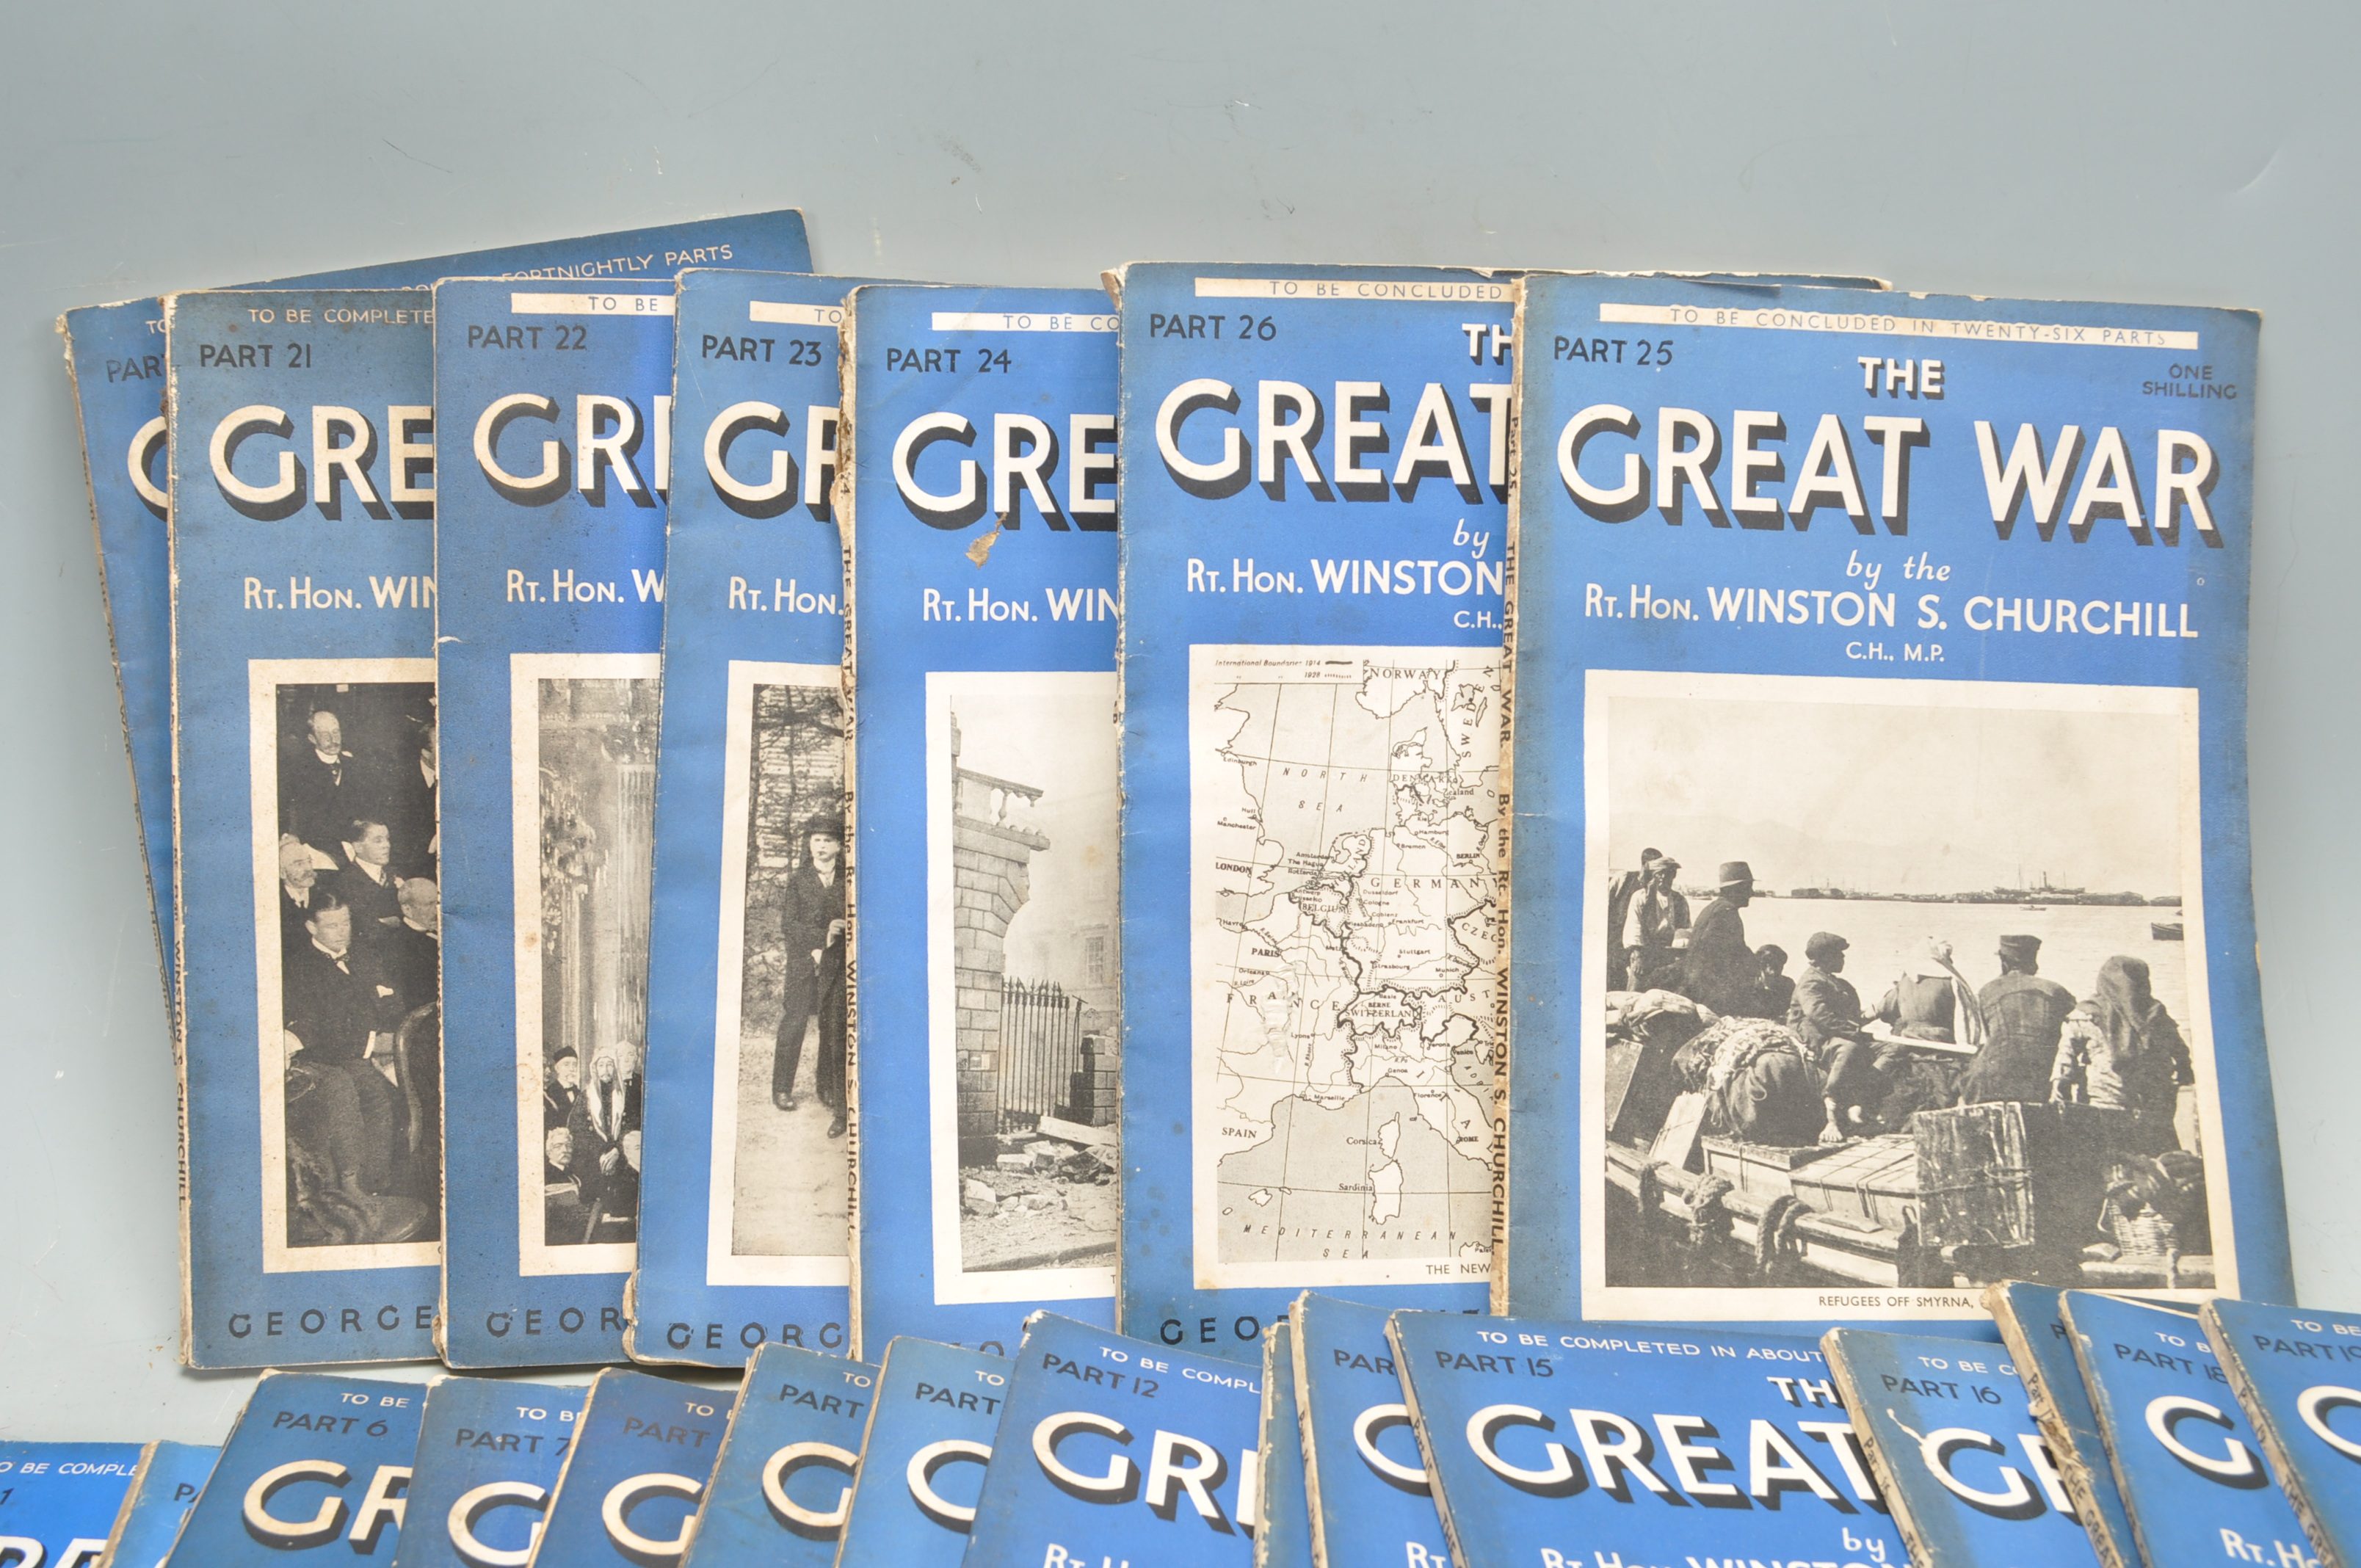 THE GREAT WAR BY WINSTON CHURCHILL - Image 2 of 4